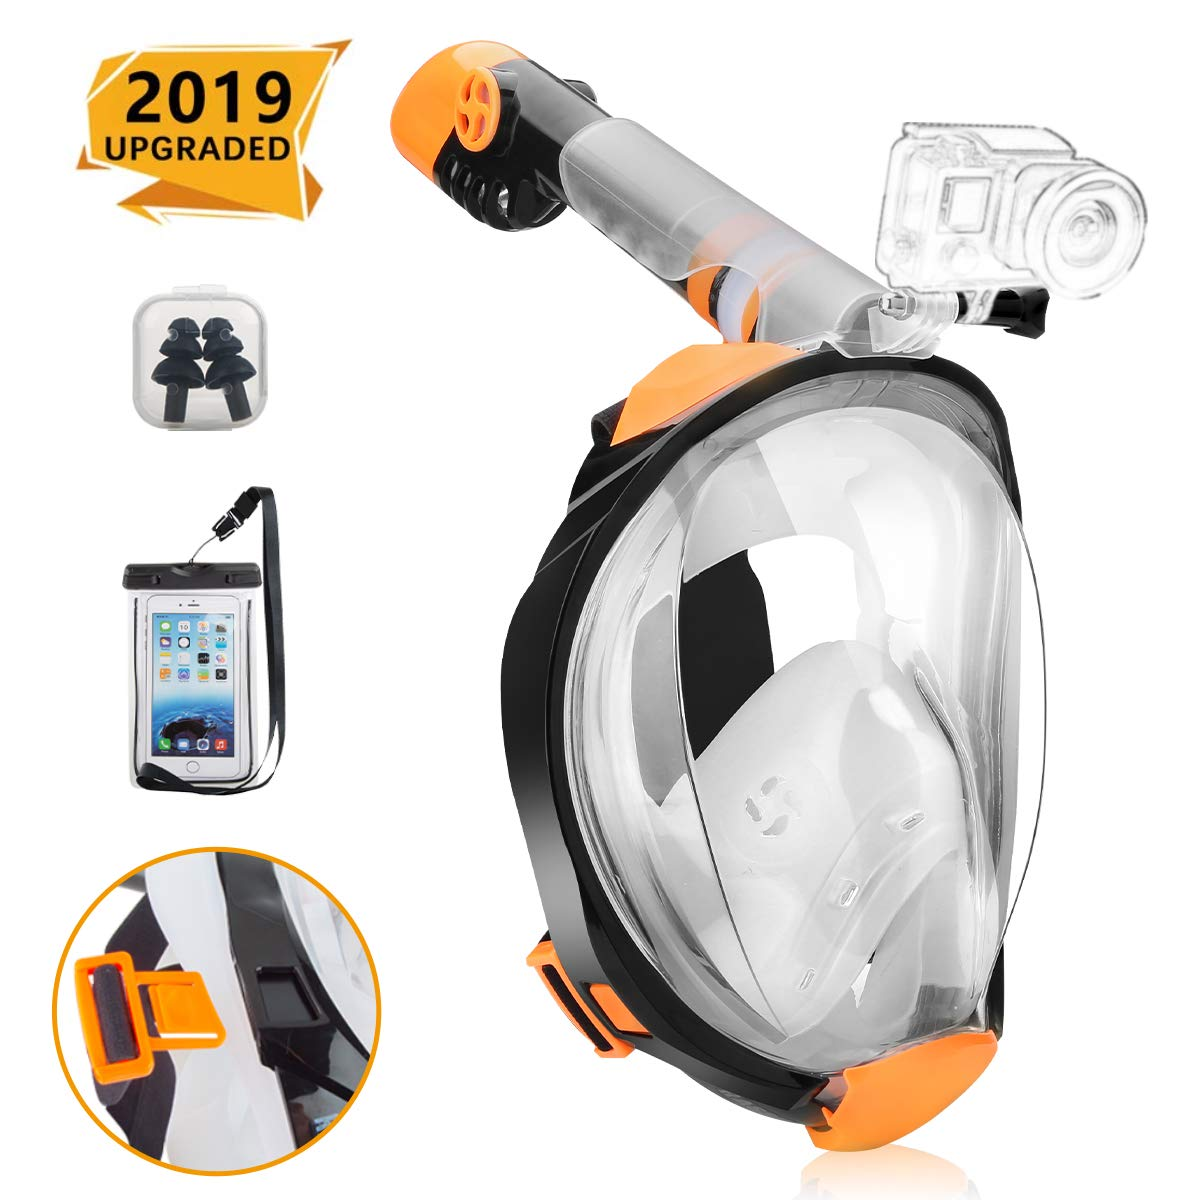 RASSE Full Face Snorkel Mask,Snorkeling Mask with Anti-Fog Anti-Leak Design and Detachable Camera Mount,Easier Breath with 180 Degree Larger View Area for Adults Youth Kids by RASSE